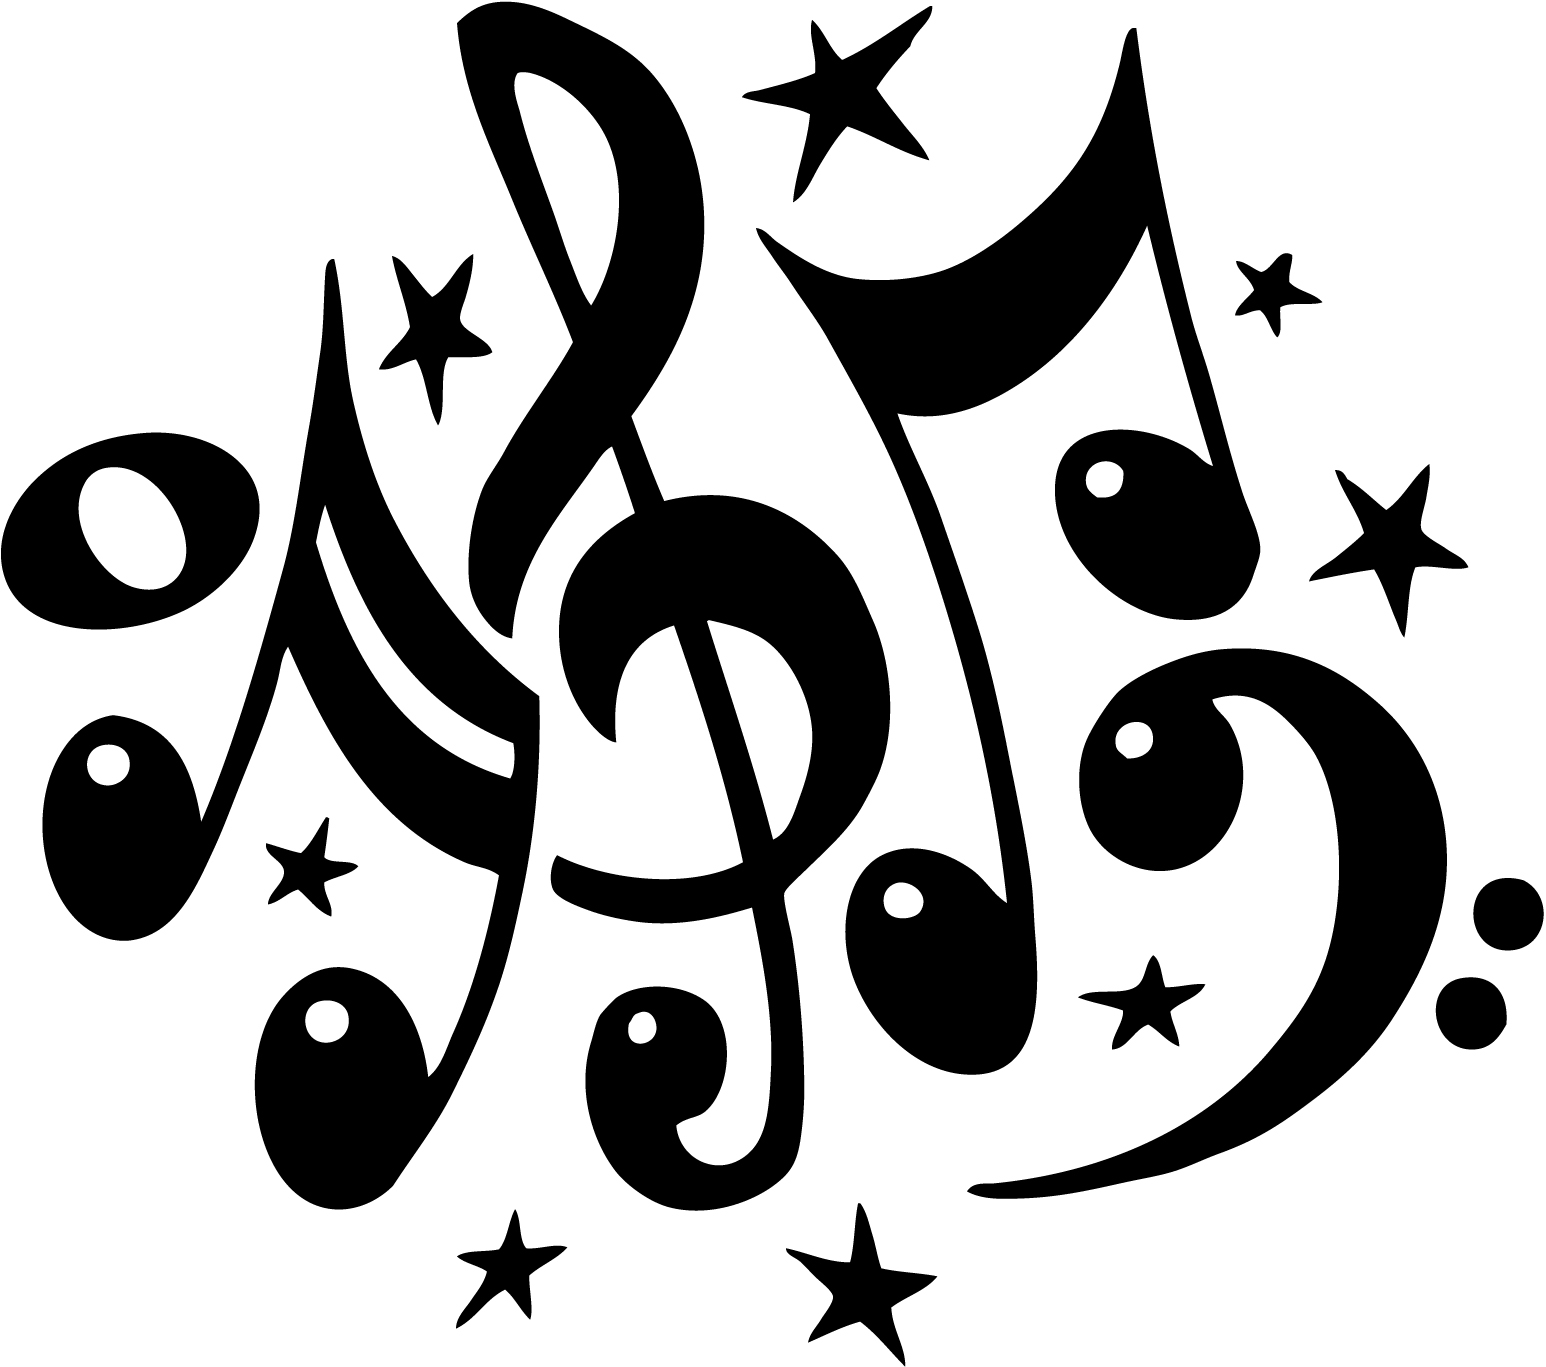 hight resolution of music notes black and white free musical note clip art music notes clipart famous and free